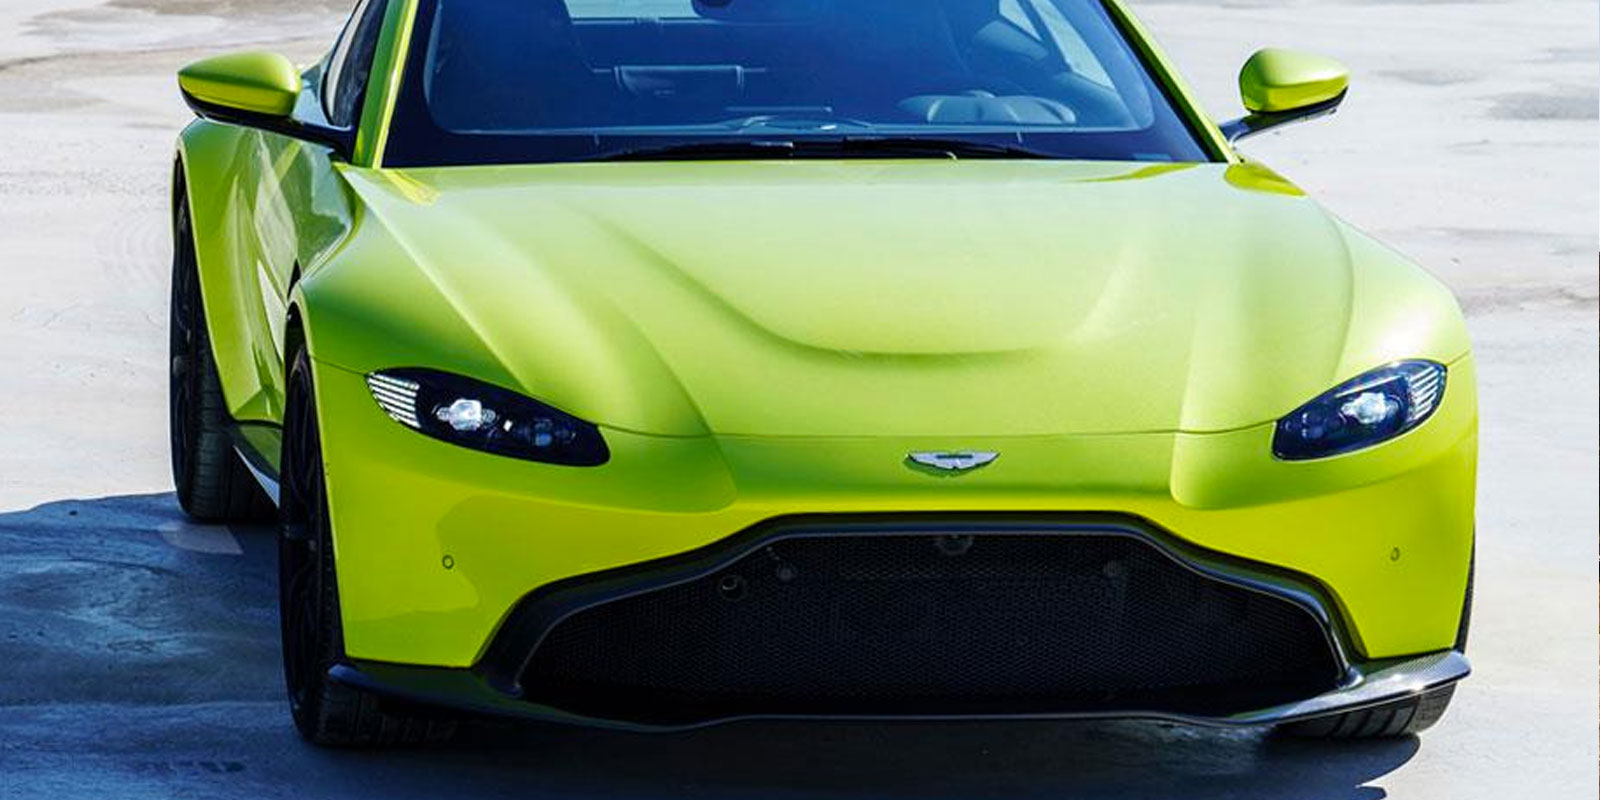 Aston Martin New Vantage - The Archetypal Hunter image 3